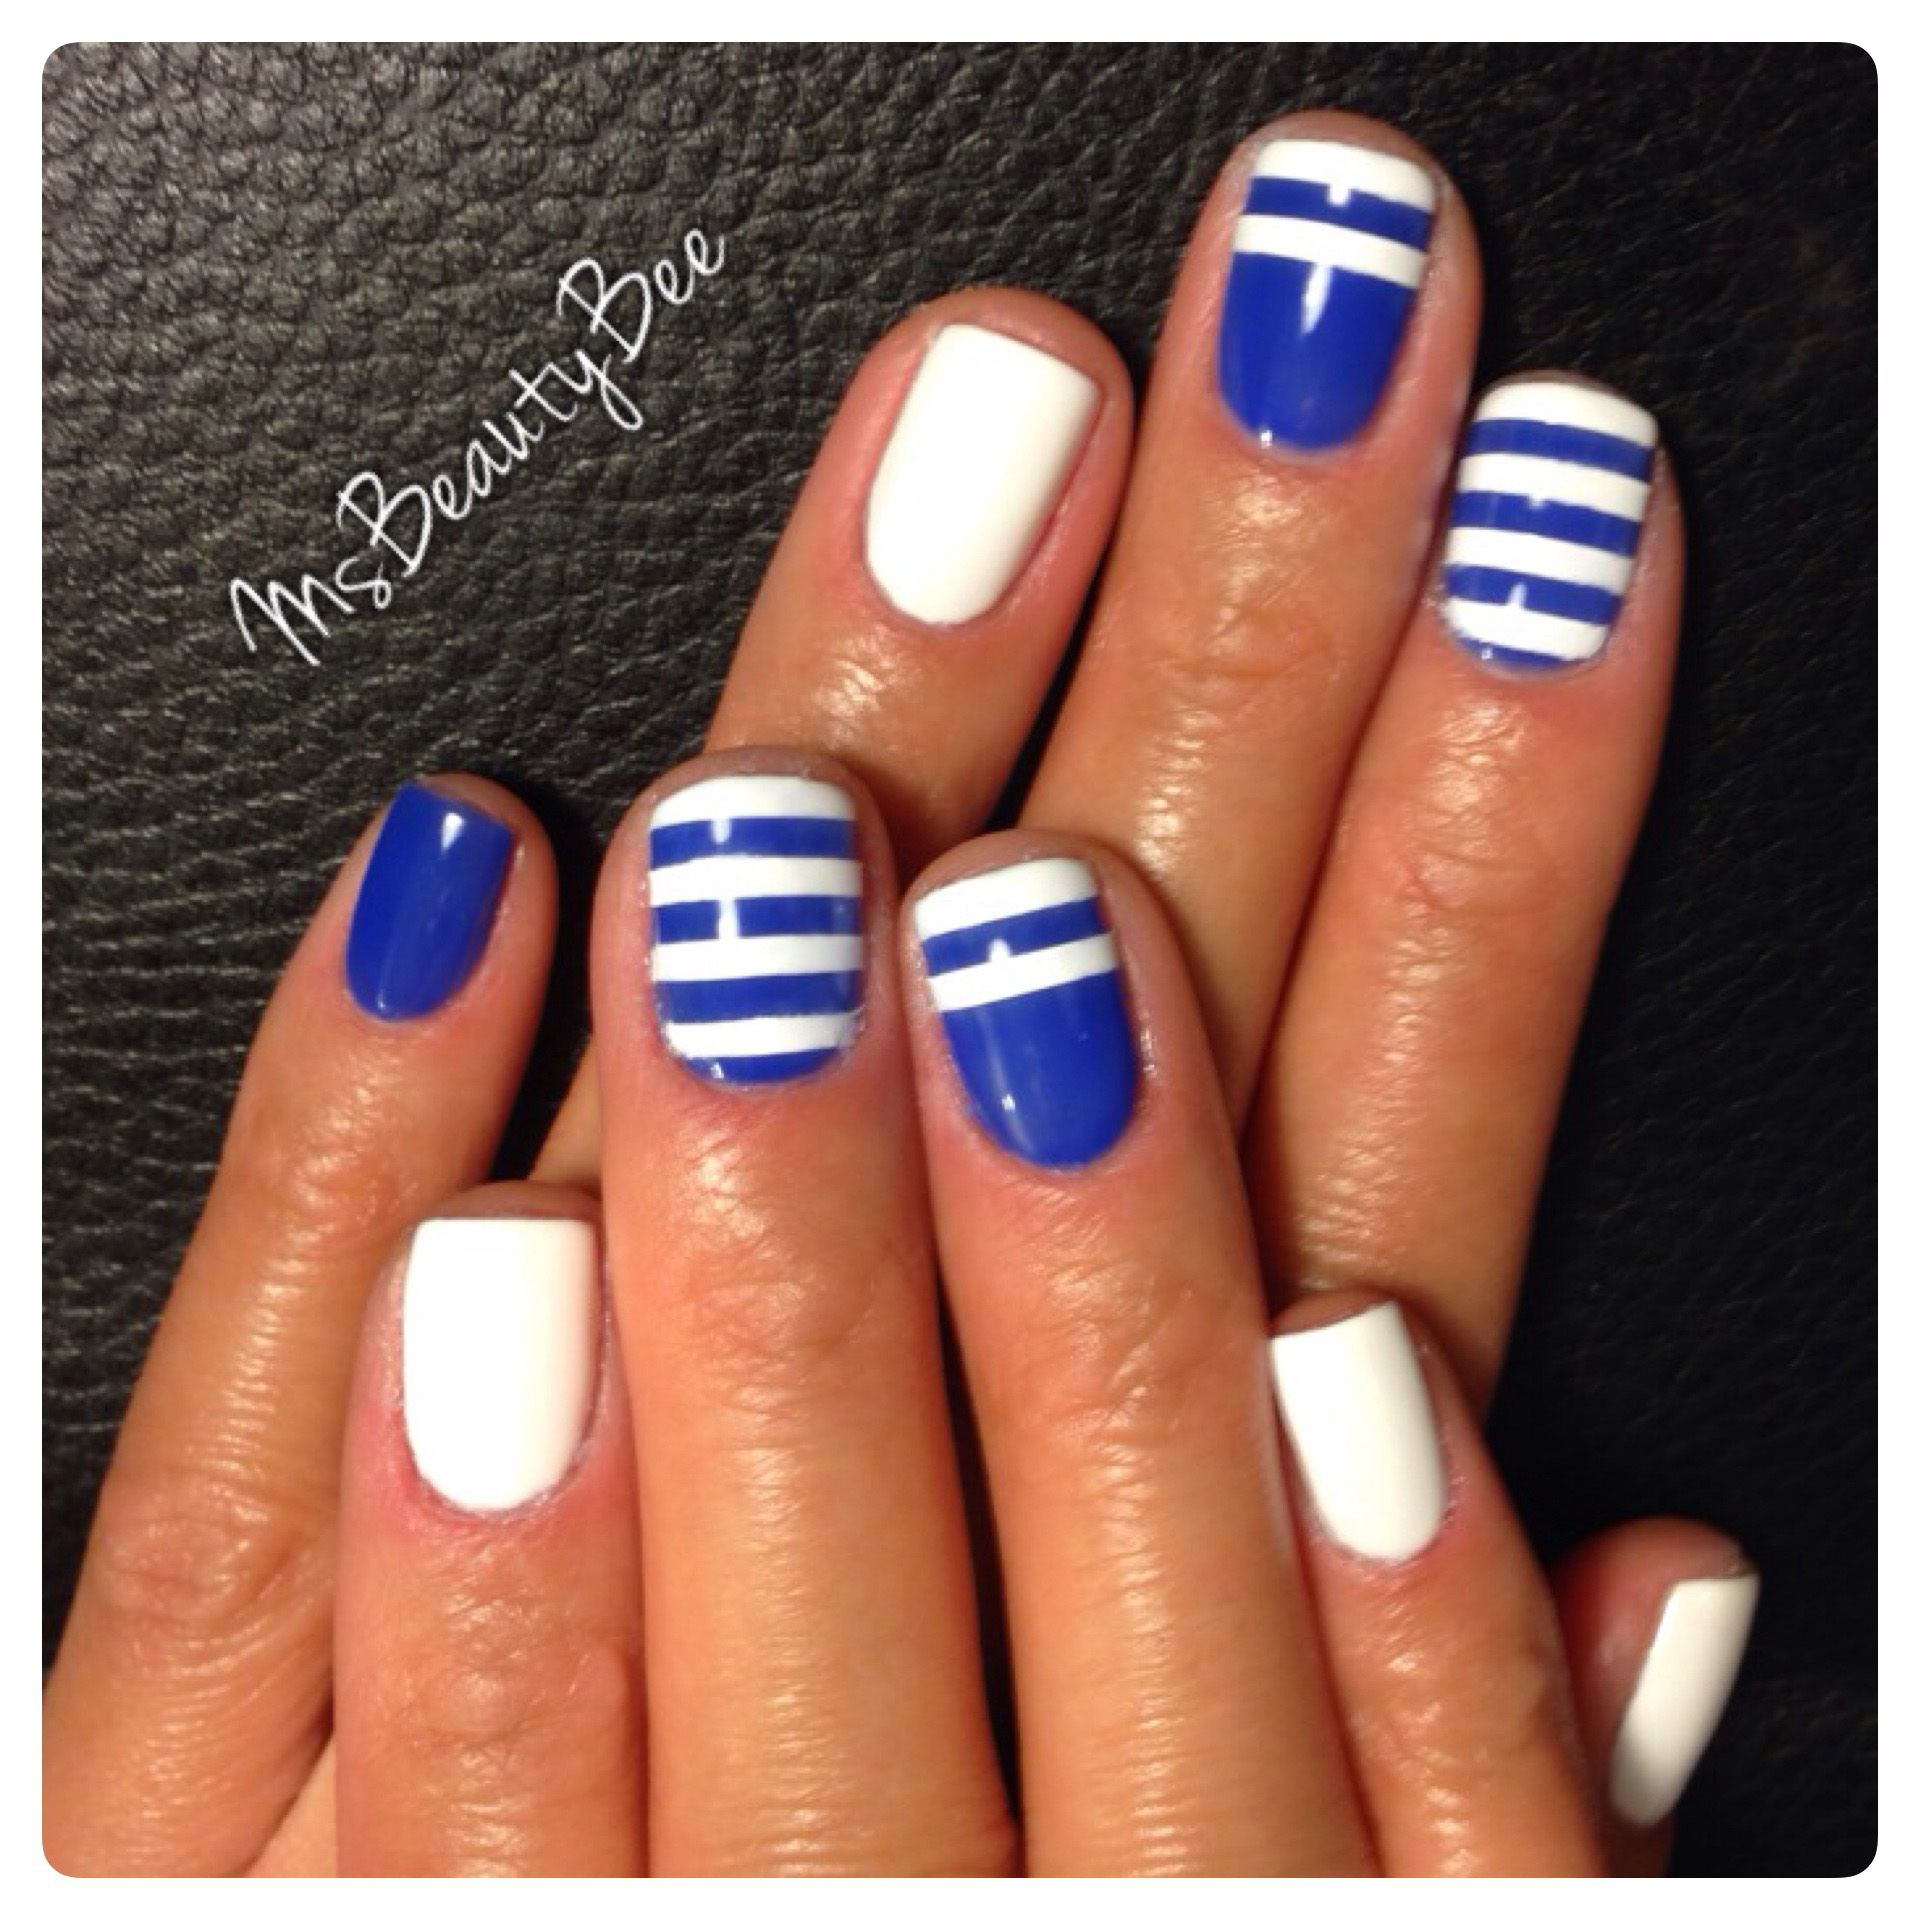 cobalt blue & white striped nails. gelish - mali-blu me away